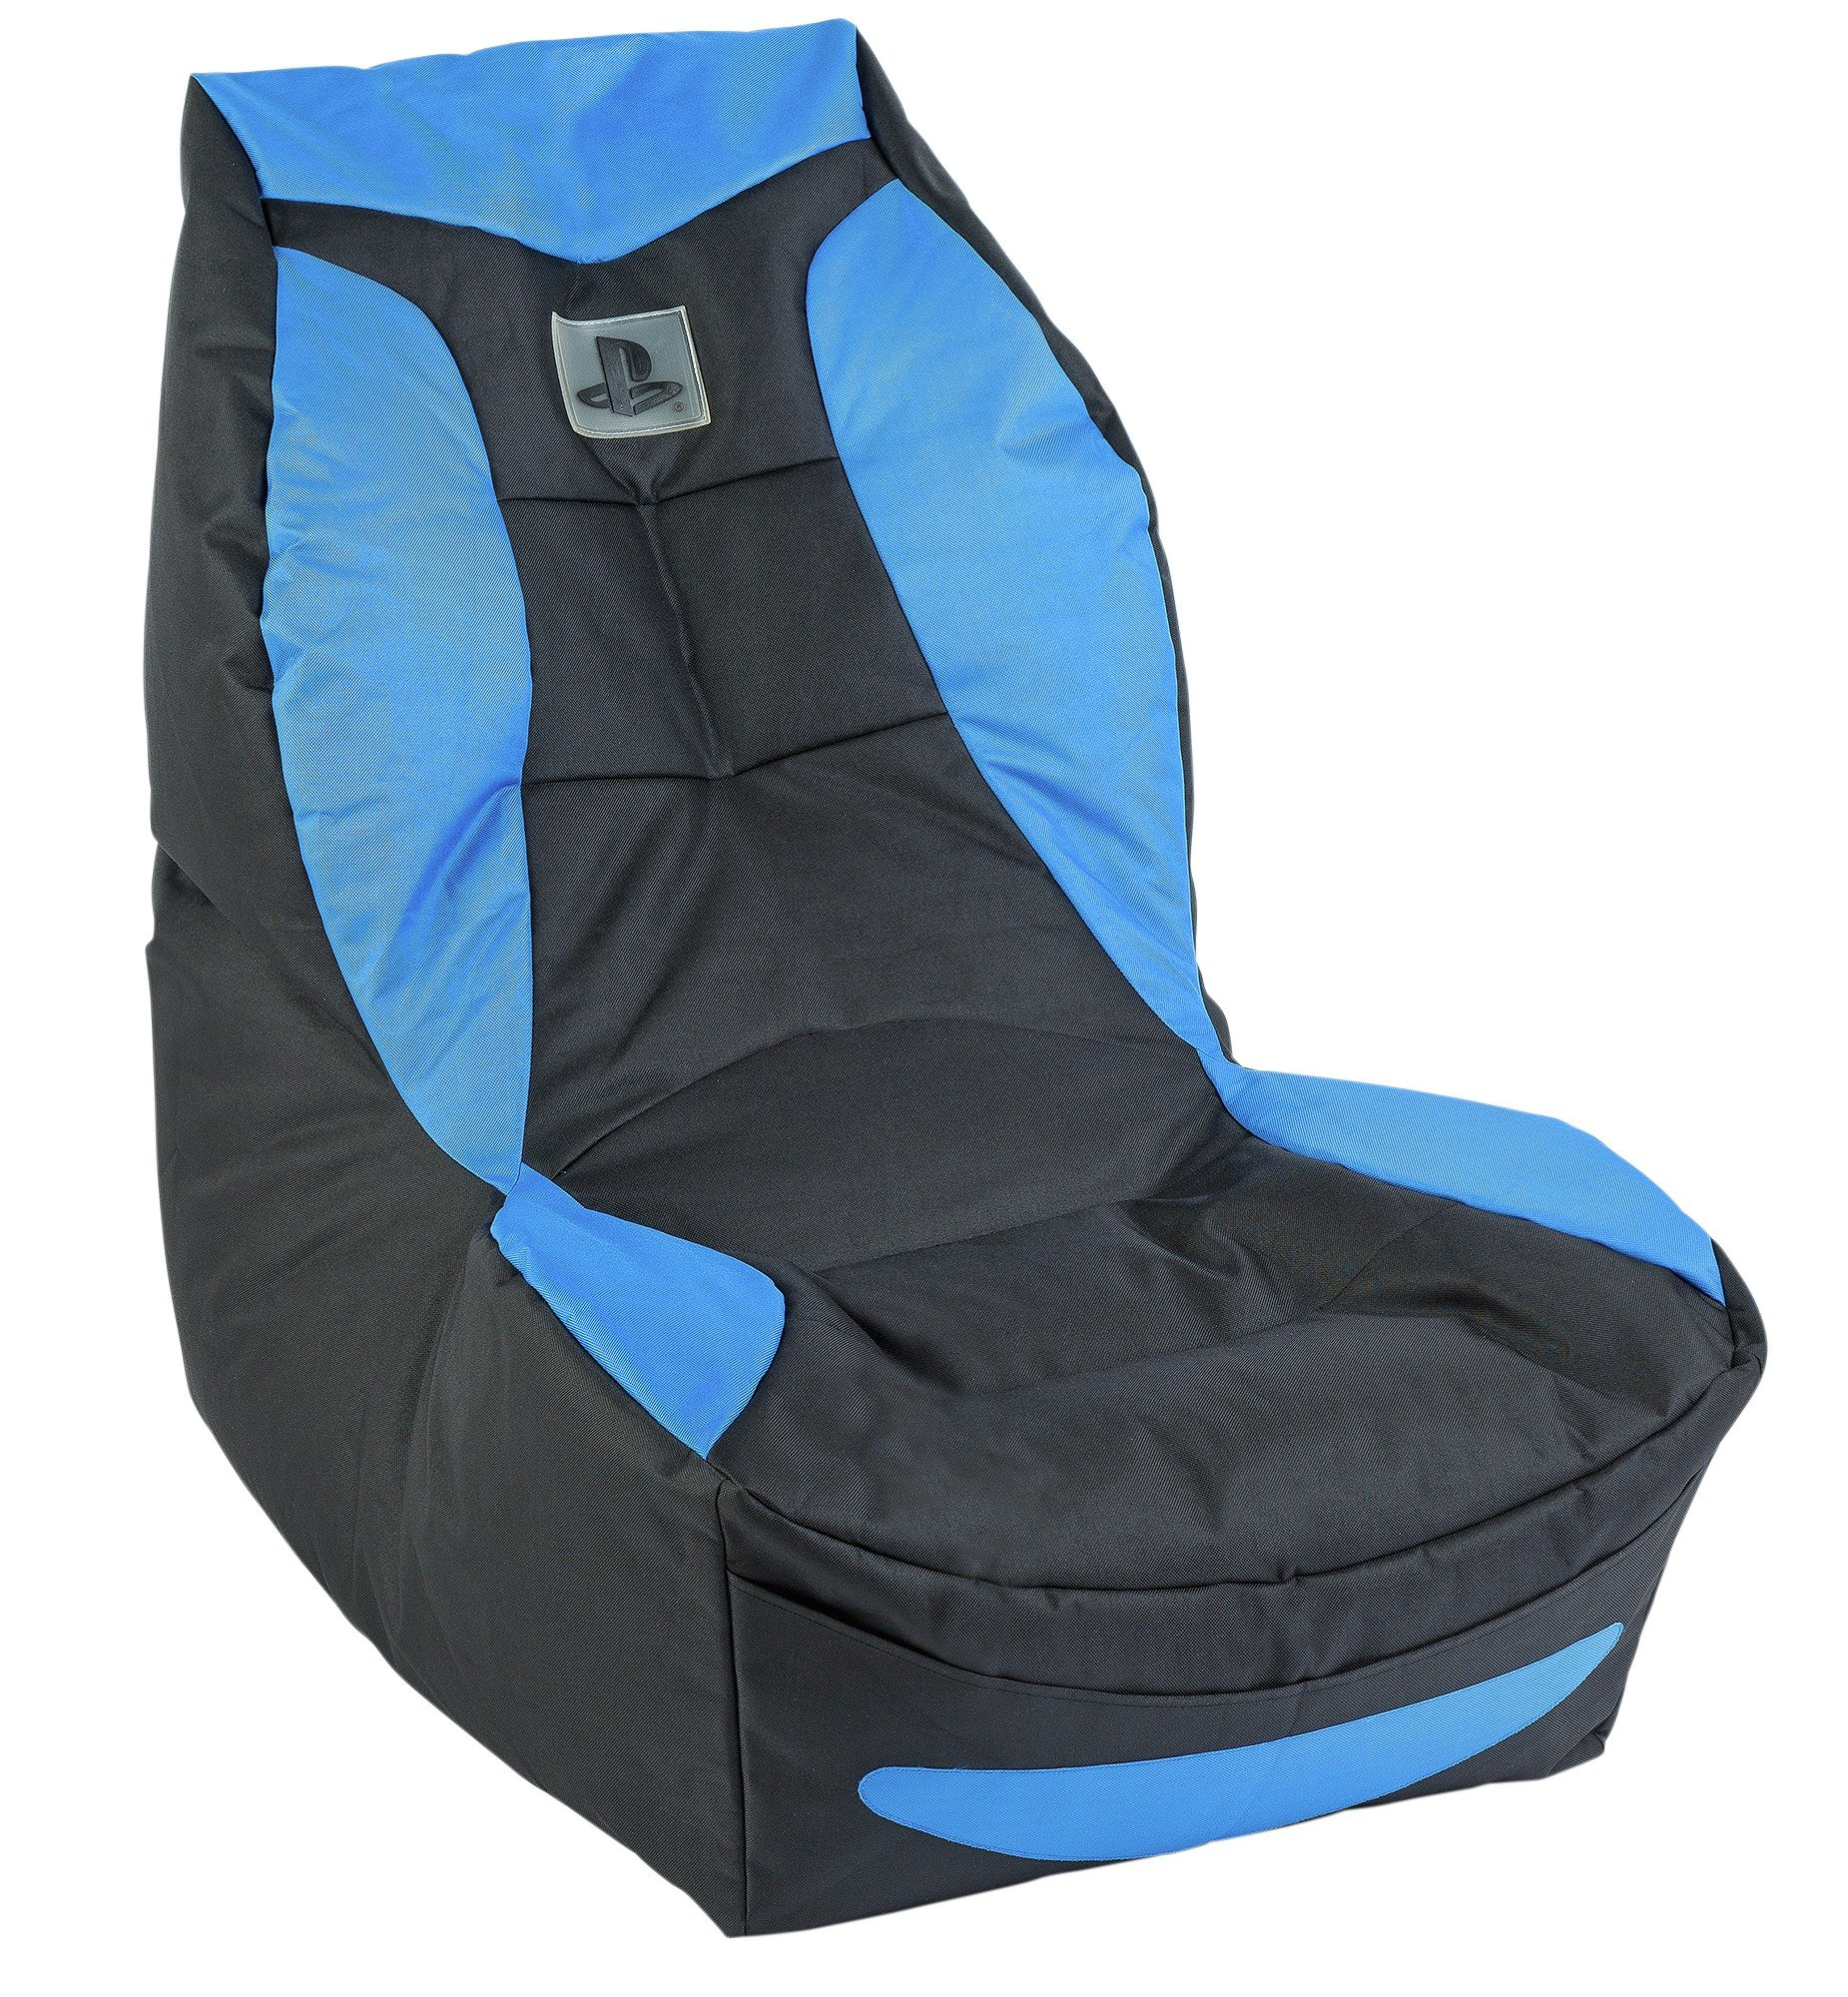 Playstation Chair